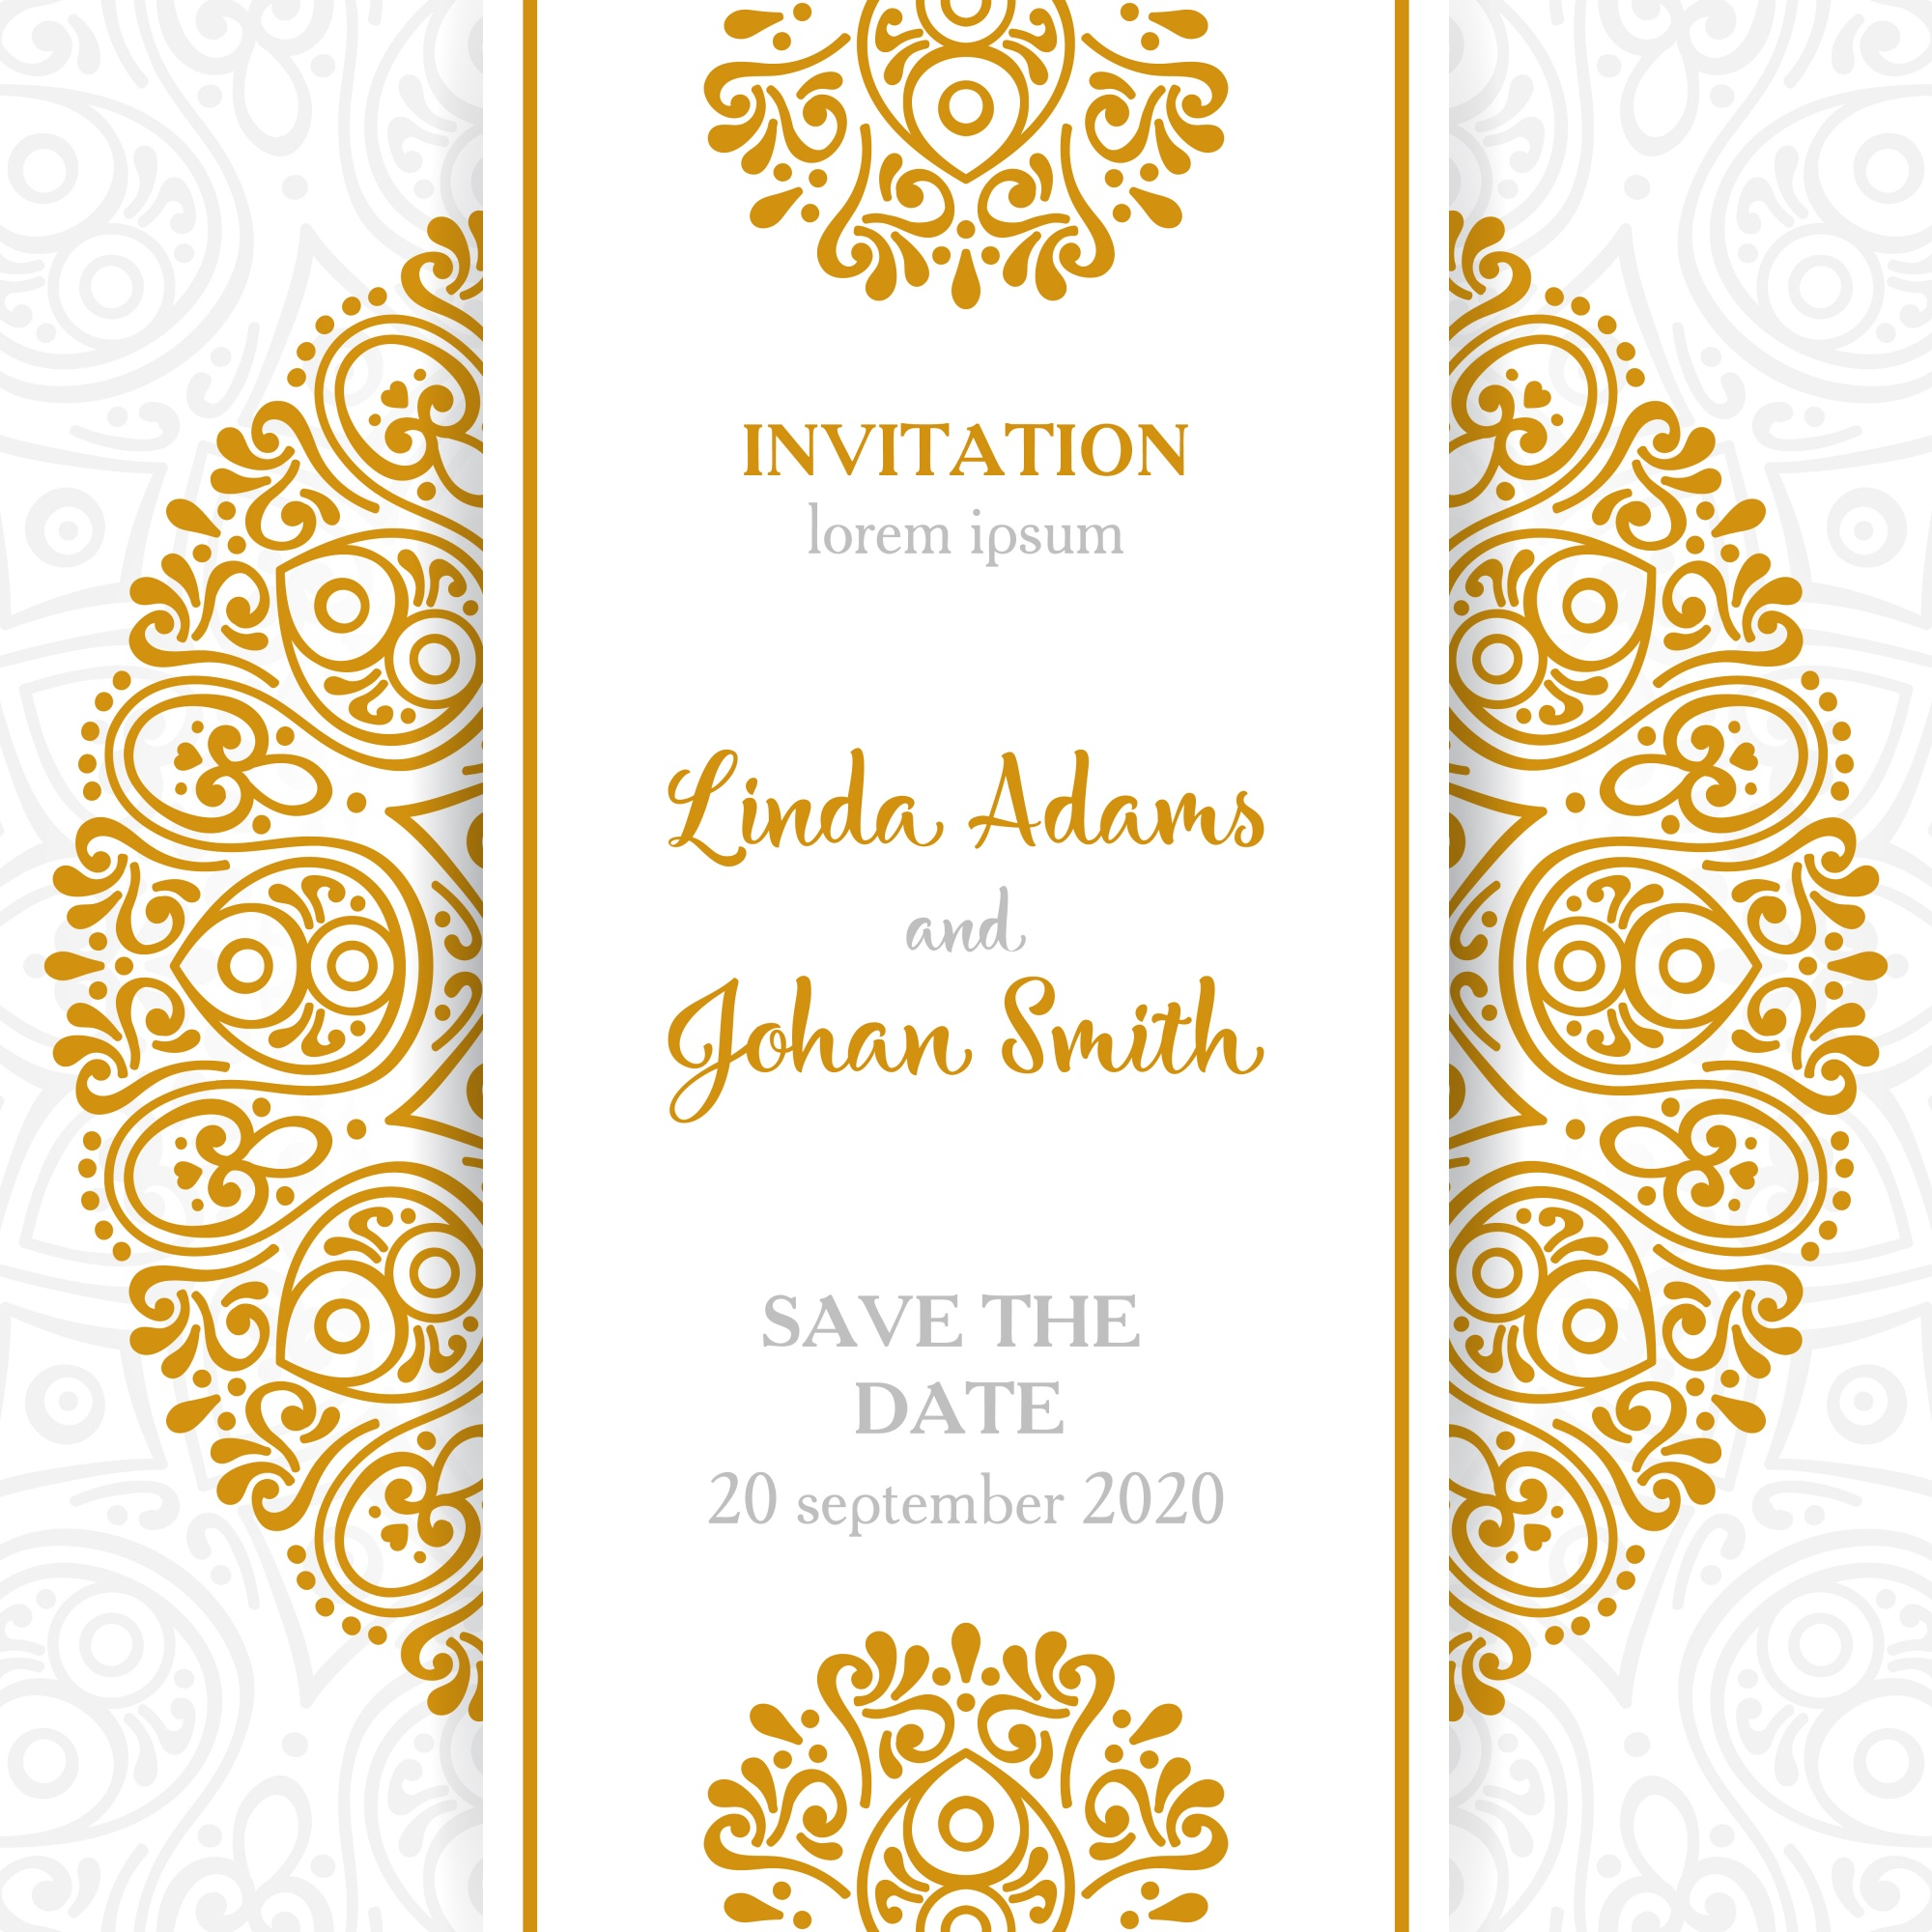 Vintage wedding invitation with mandala